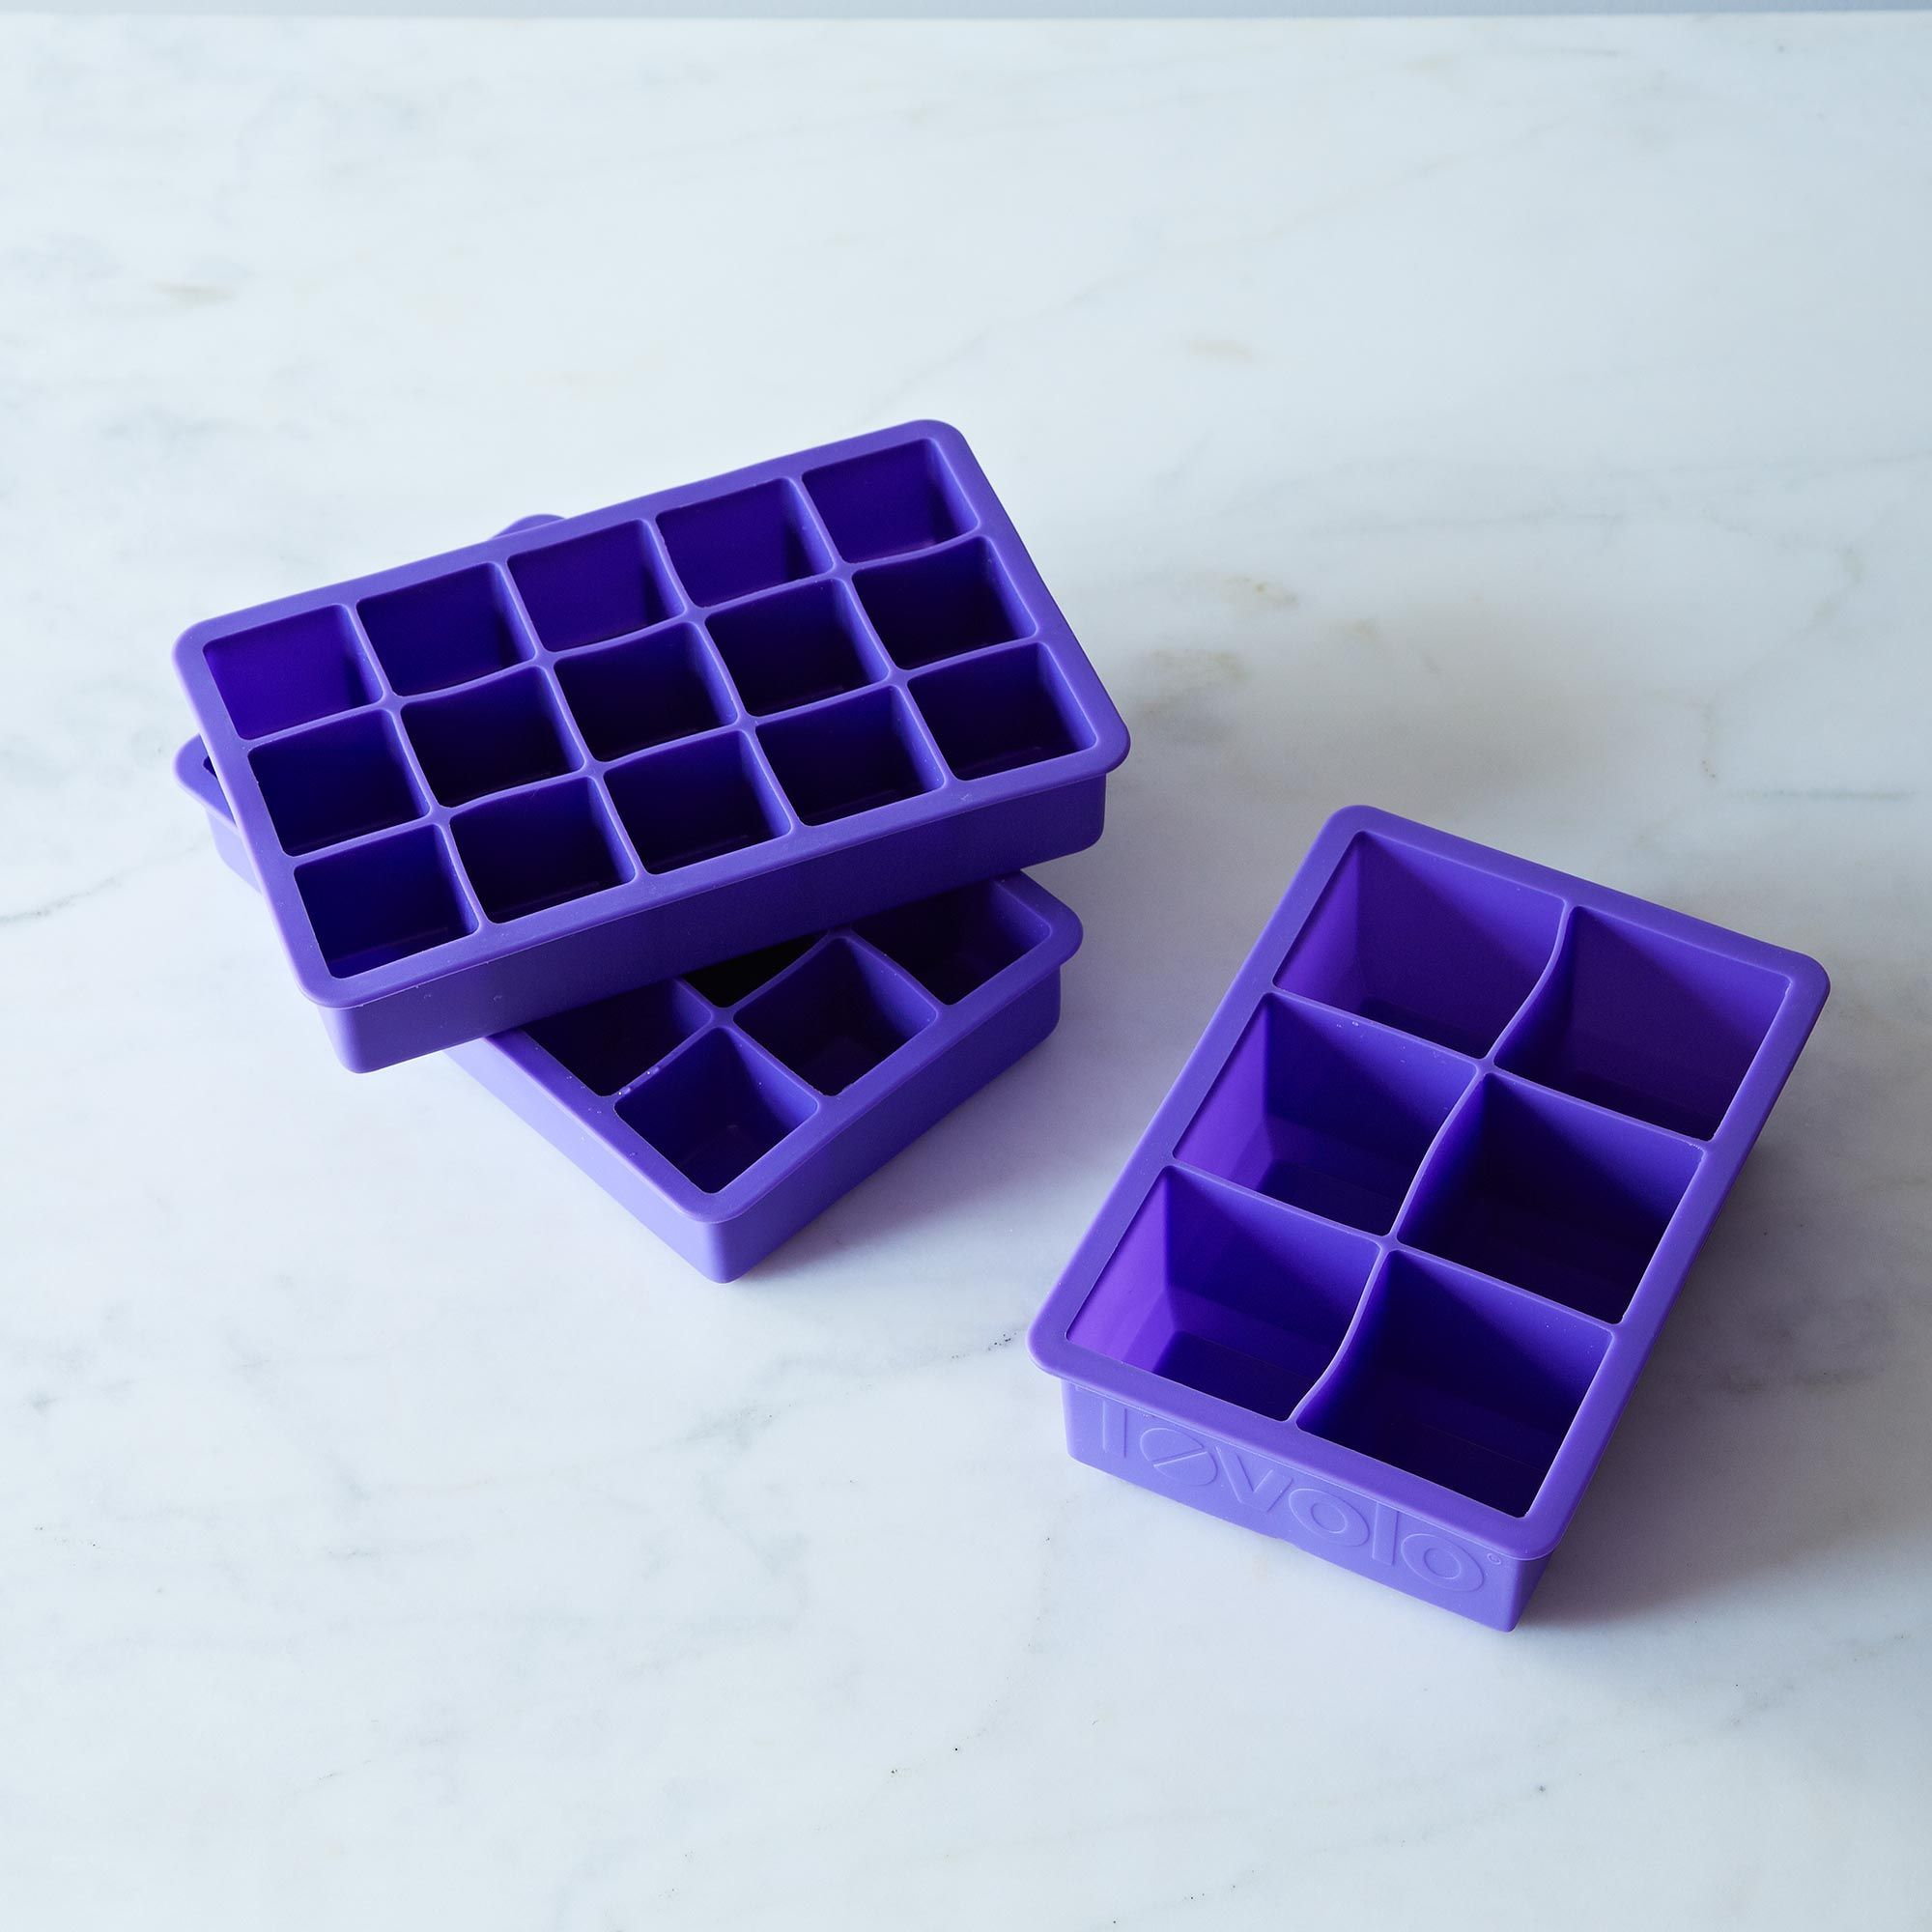 346b45ce a0f6 11e5 a190 0ef7535729df  2013 0723 boston shaker square ice cube tray bundle purple 002